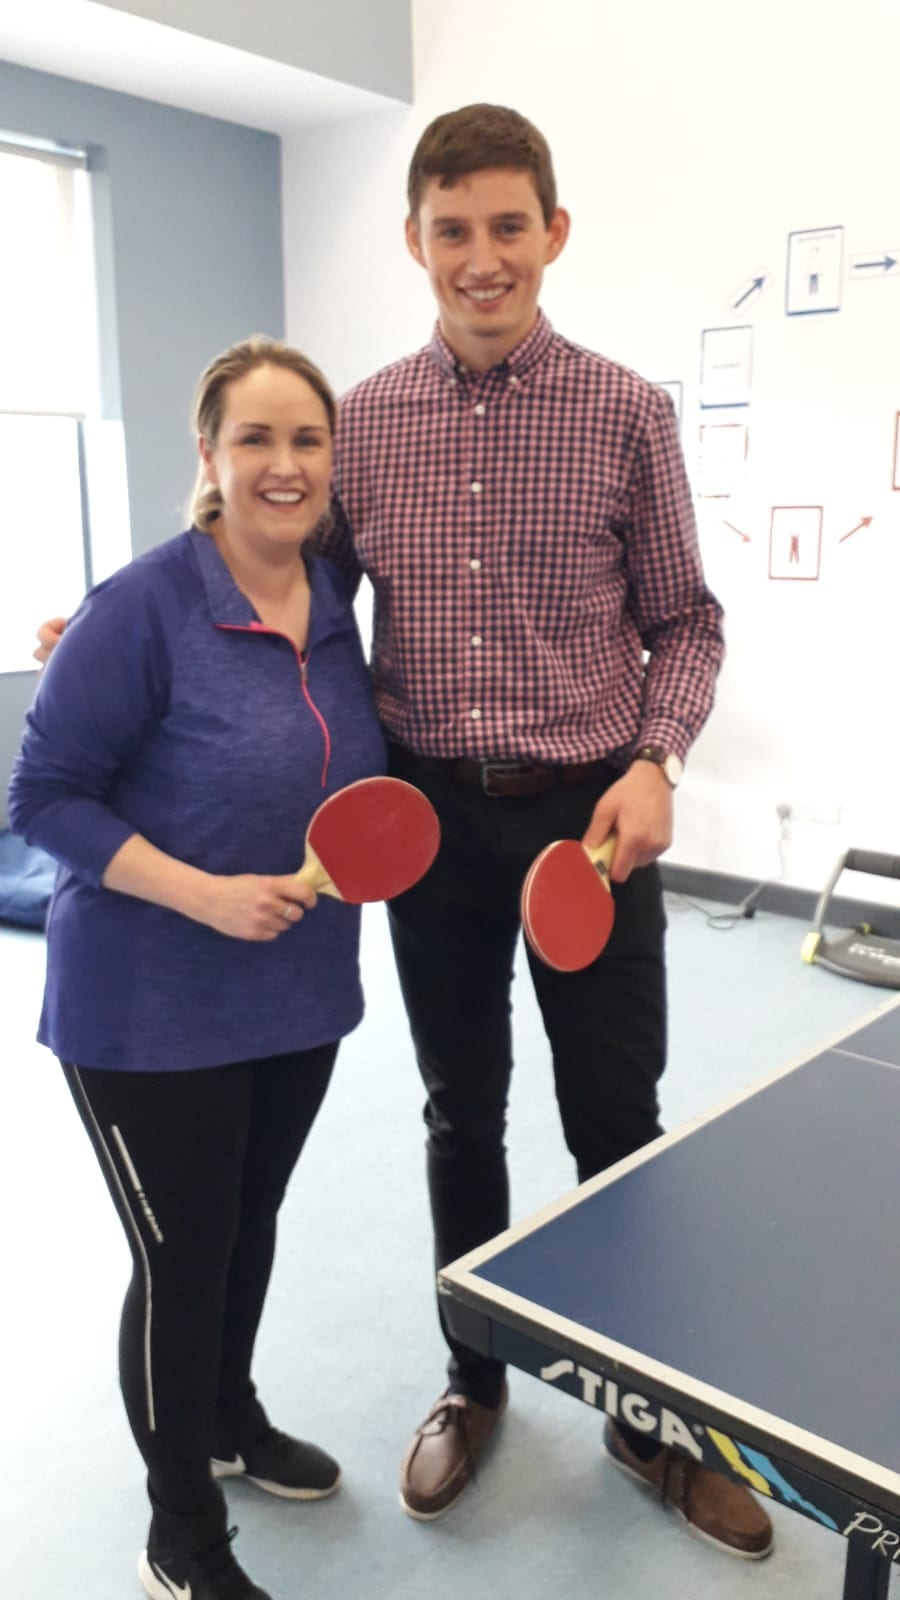 No hard feelings for Ms Creed after she was narrowly defeated by Mr Hegarty in the table tennis final